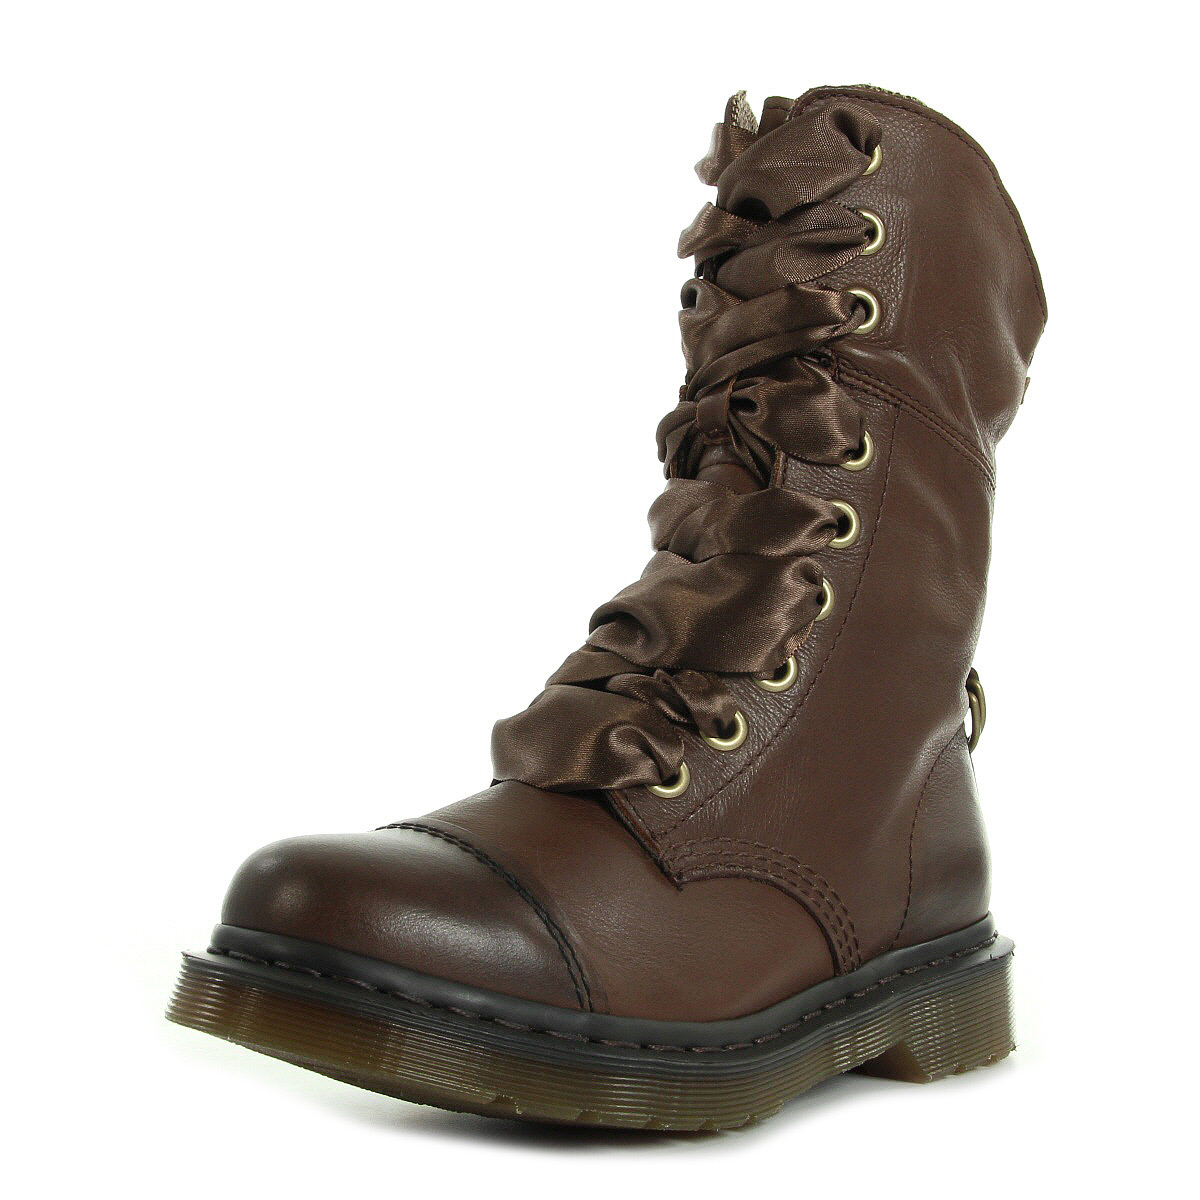 bottes dr martens femme aimilita taille marron cuir lacets ebay. Black Bedroom Furniture Sets. Home Design Ideas